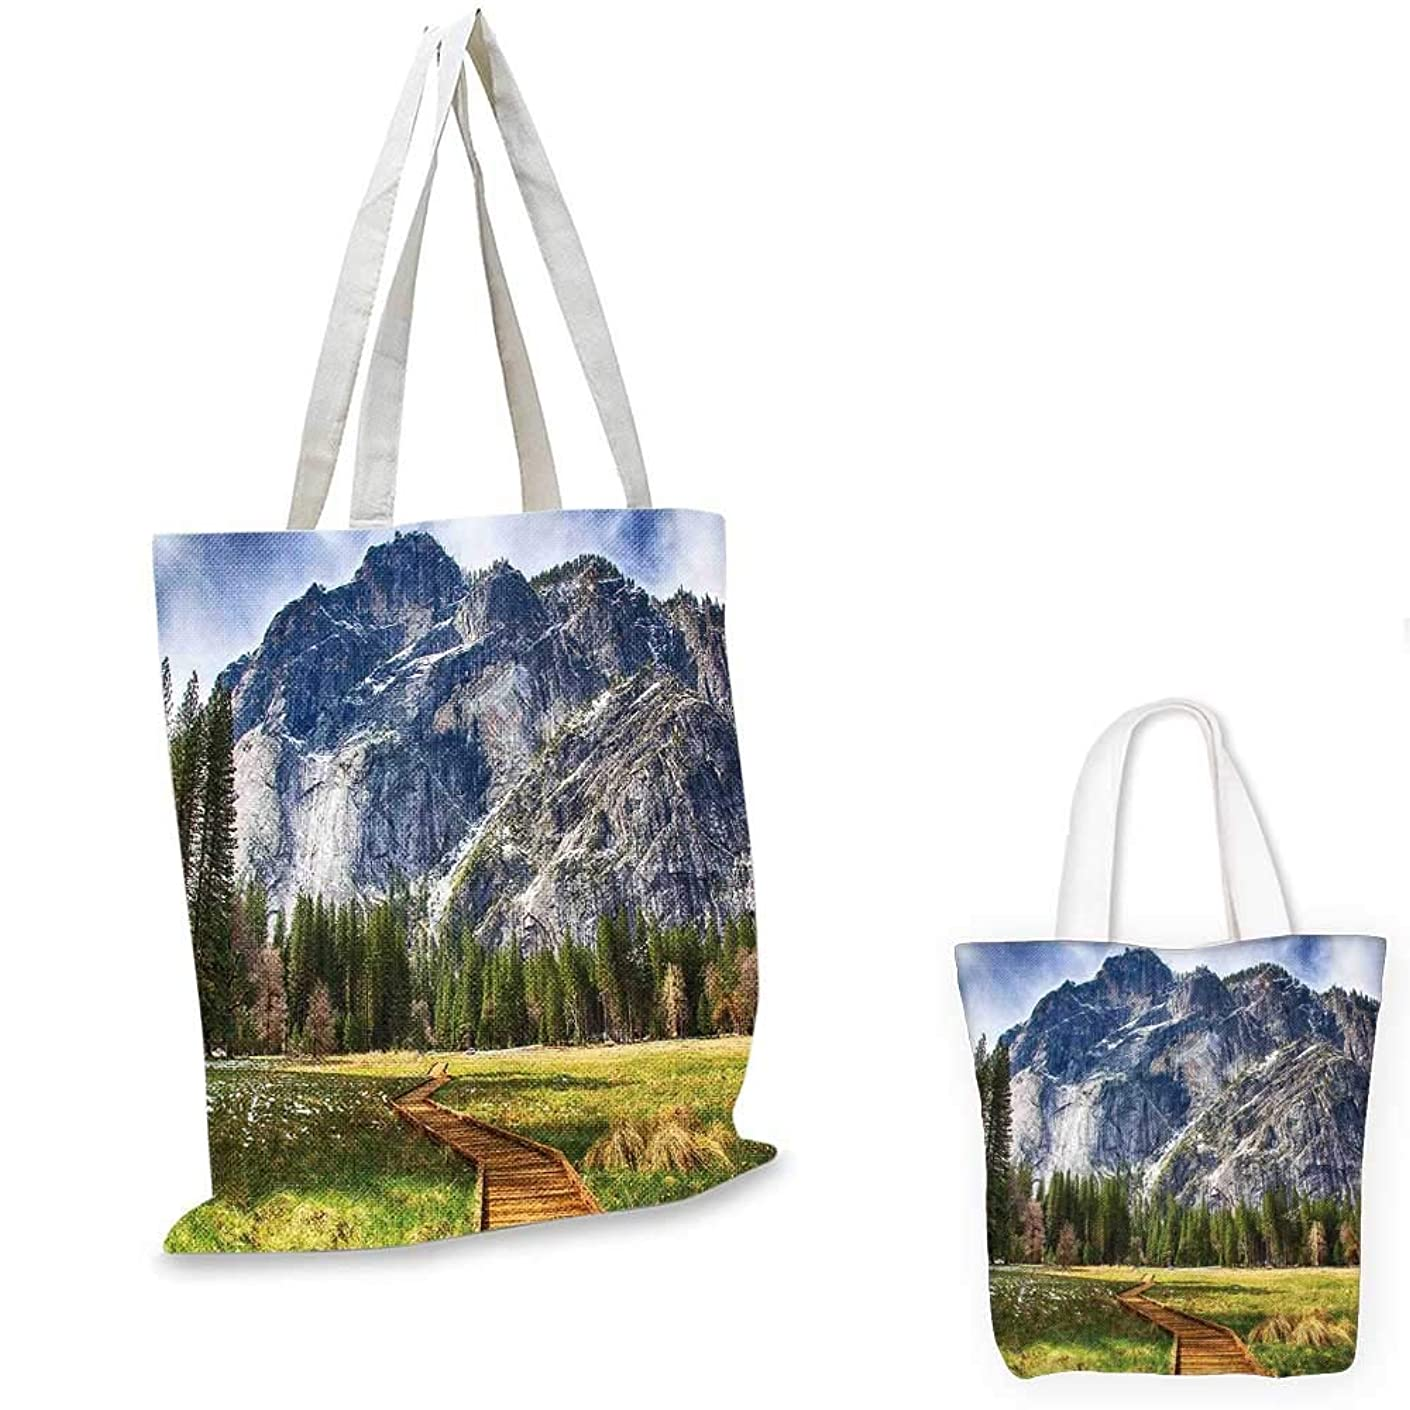 Yosemite canvas shoulder bag North Dome as Seen From the Valley With Wooden Walkway Yosemite National Park shopping bag for women Green Charcoal. 12